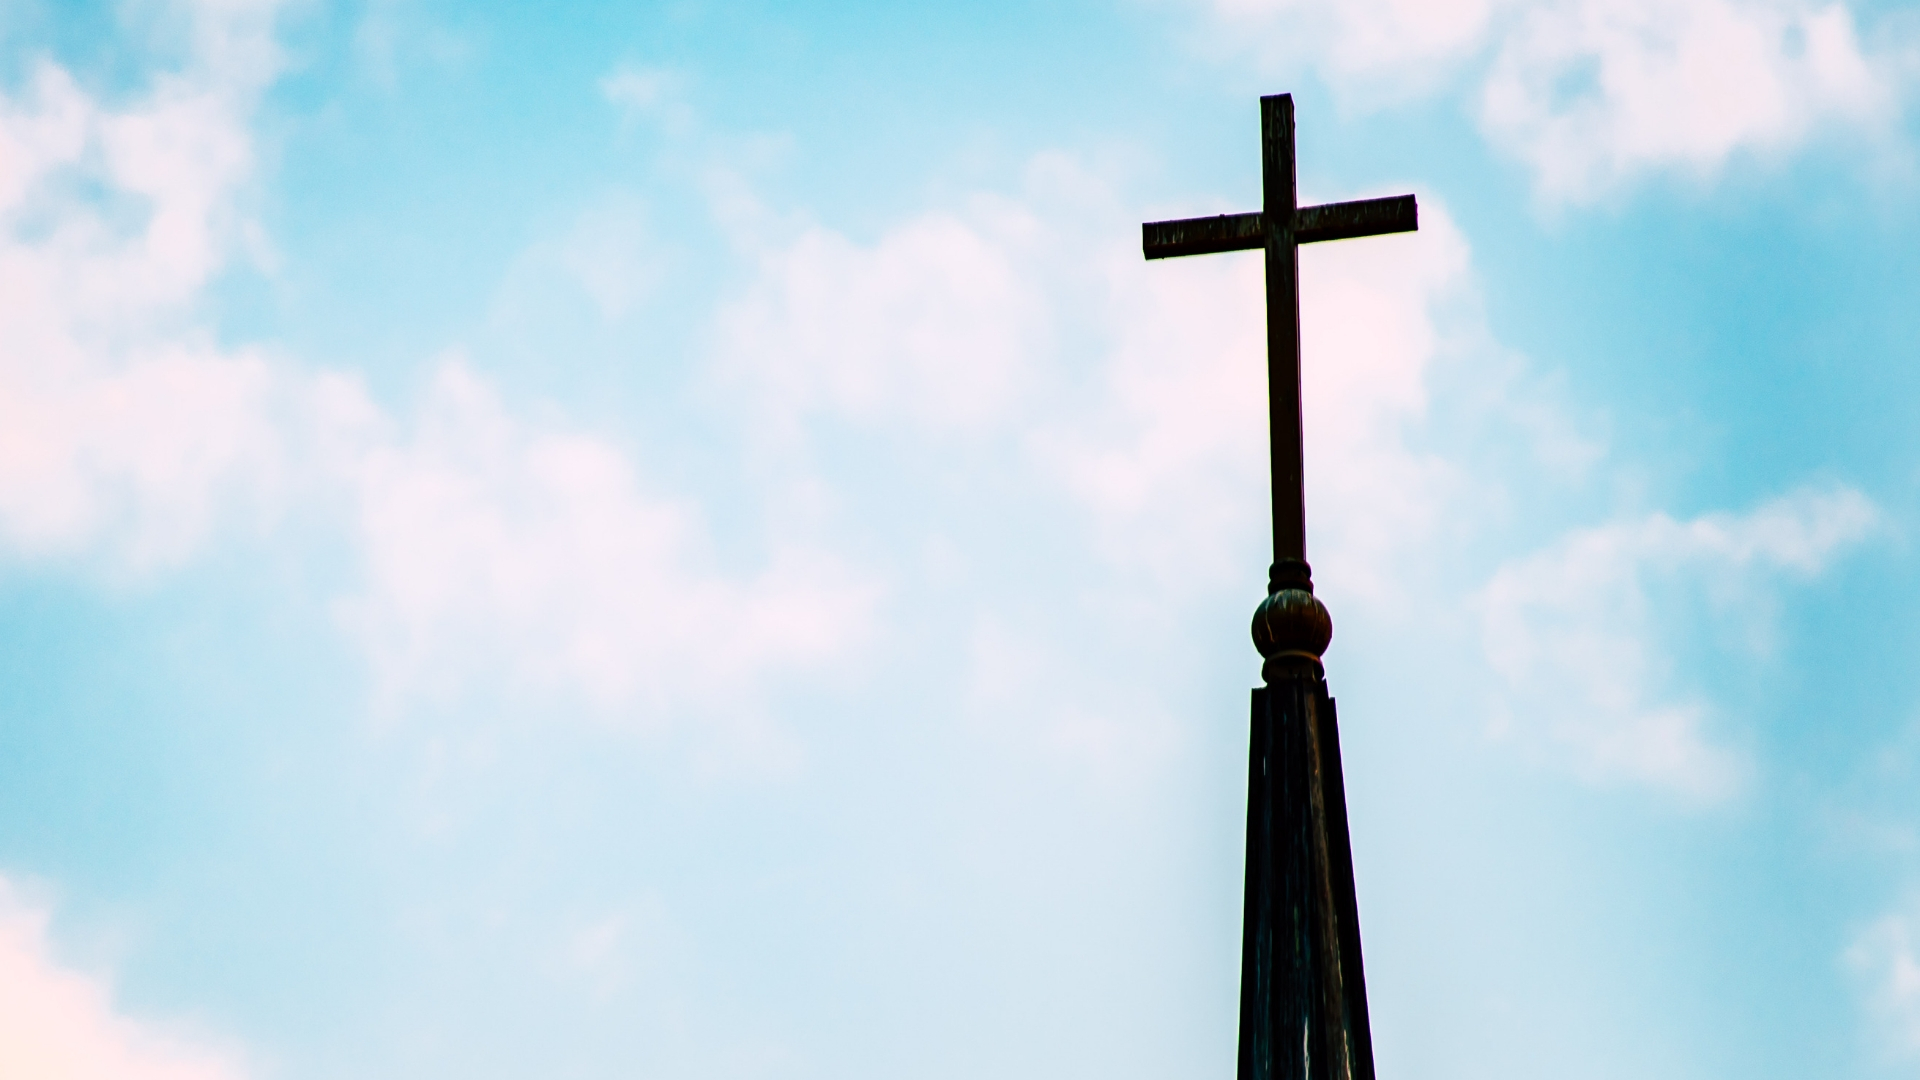 CHURCH PARTNERS - View a list of community churches who partner with PIC